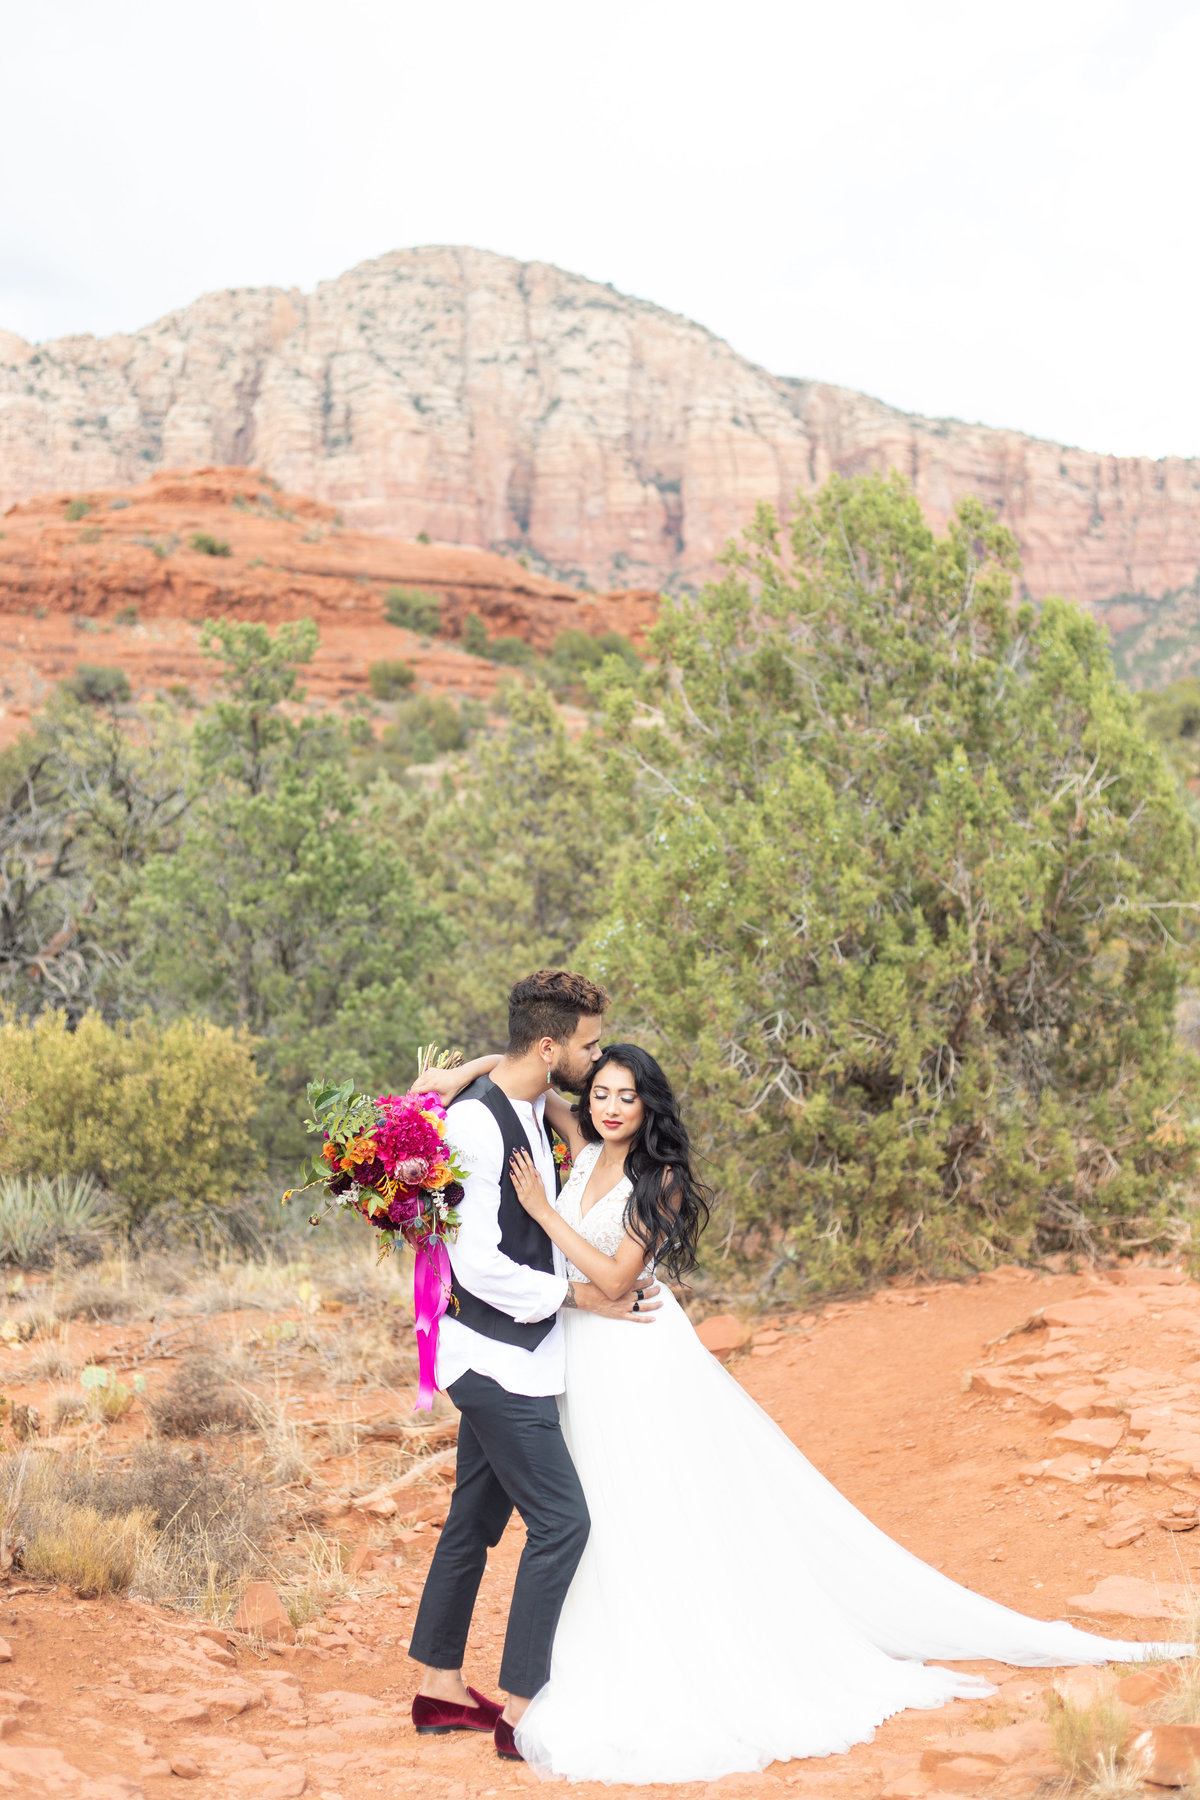 Tlaquapaque and Red Rock Bride & Groom Portraits-155